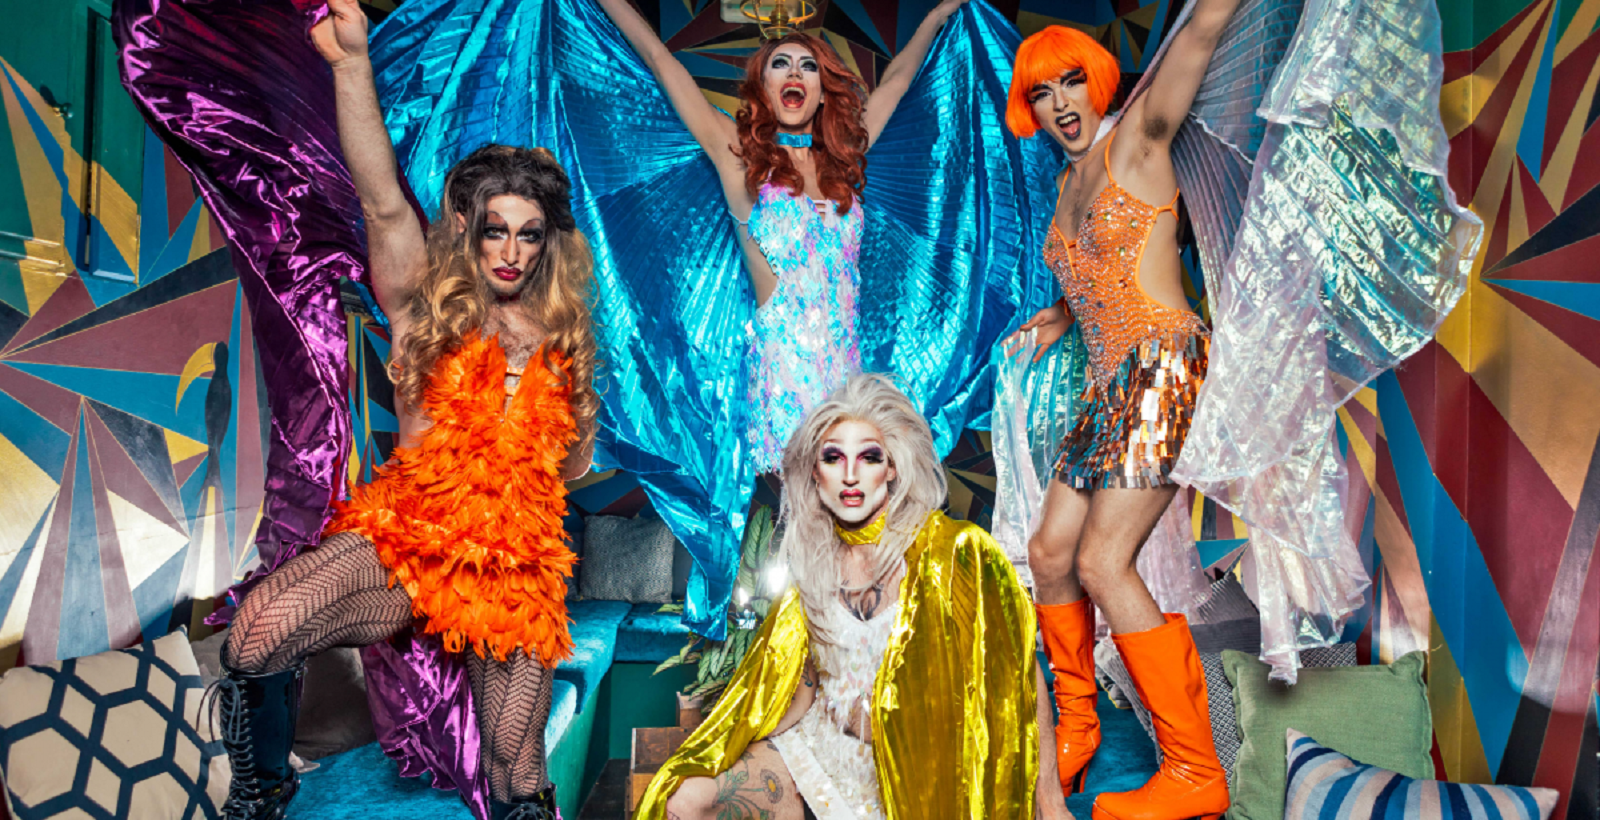 Strictly Come Drag Queen © Tom Leishman